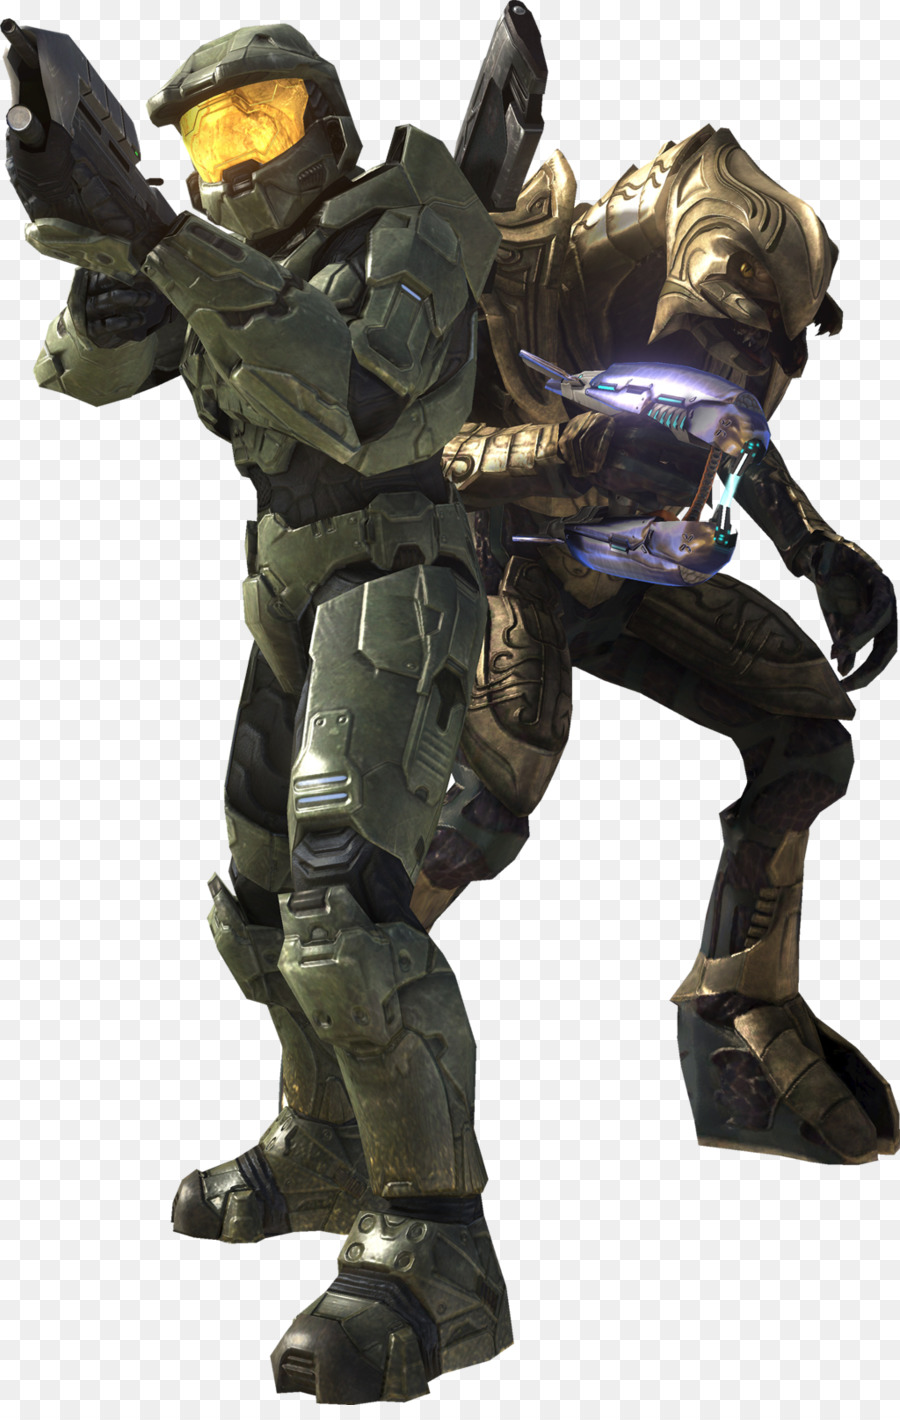 Halo Png Download 1024 1599 Free Transparent Halo 3 Png